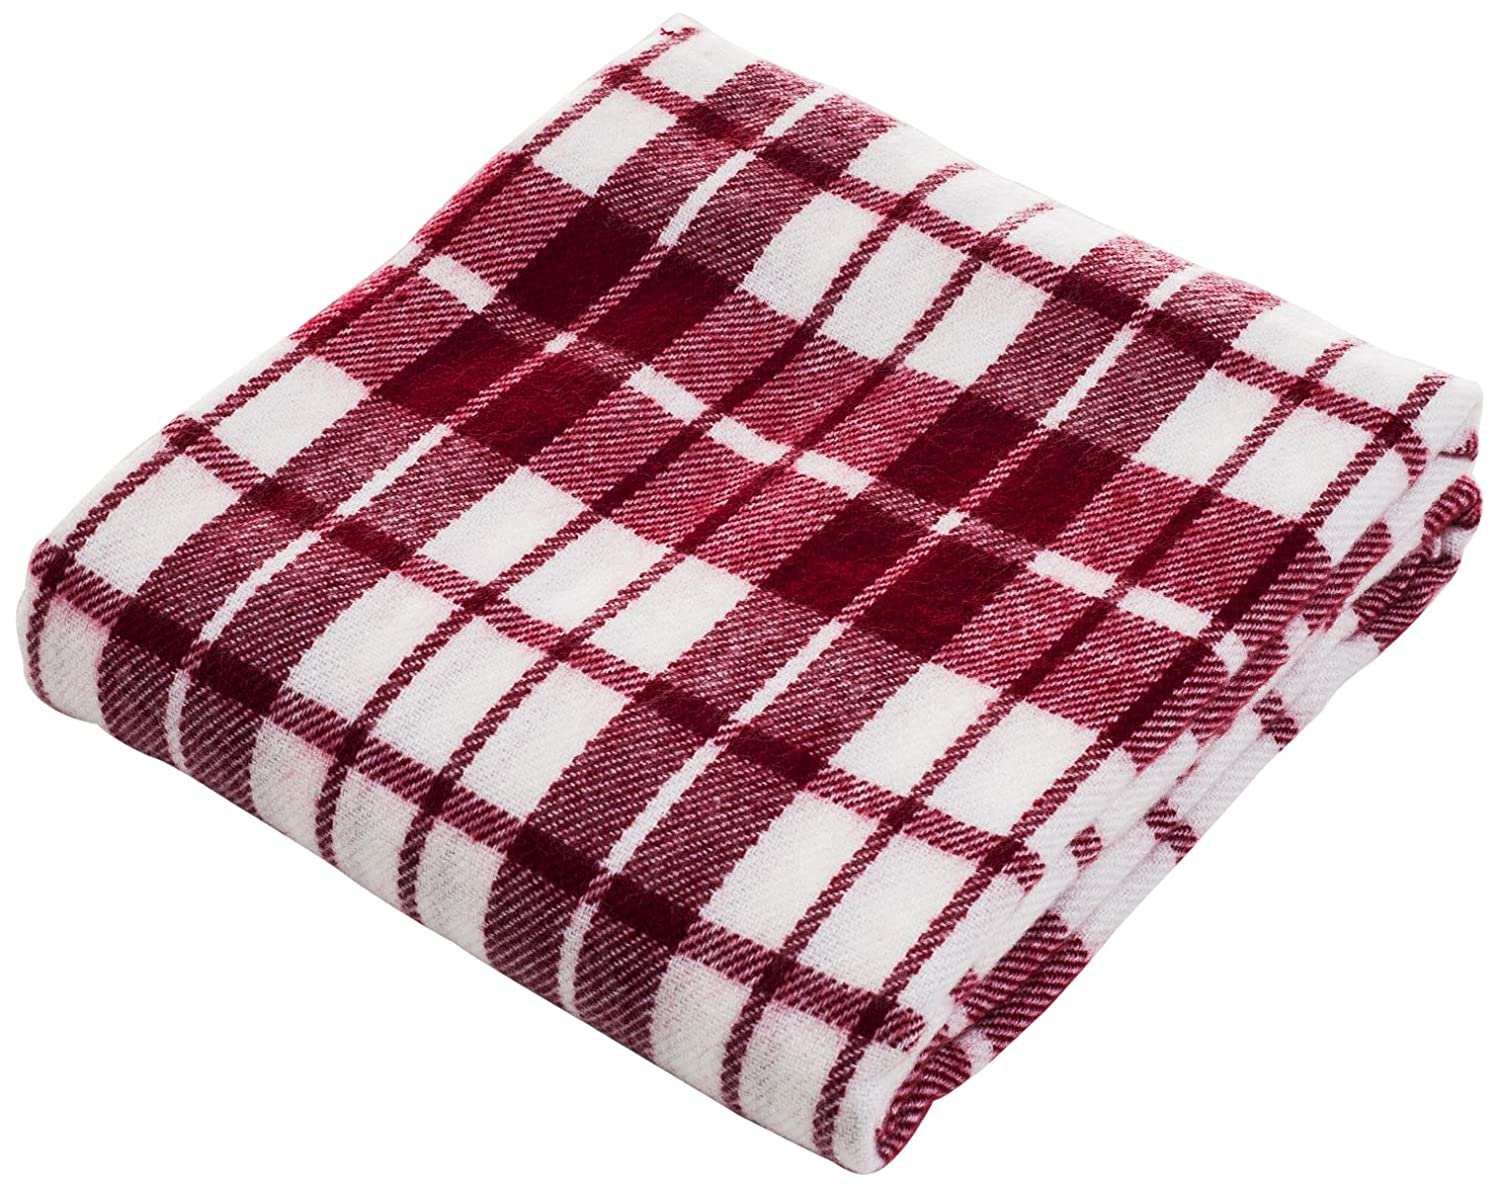 Bedford Home Throw Blanket, Cashmere-Like, Blue/Red 61A-18601